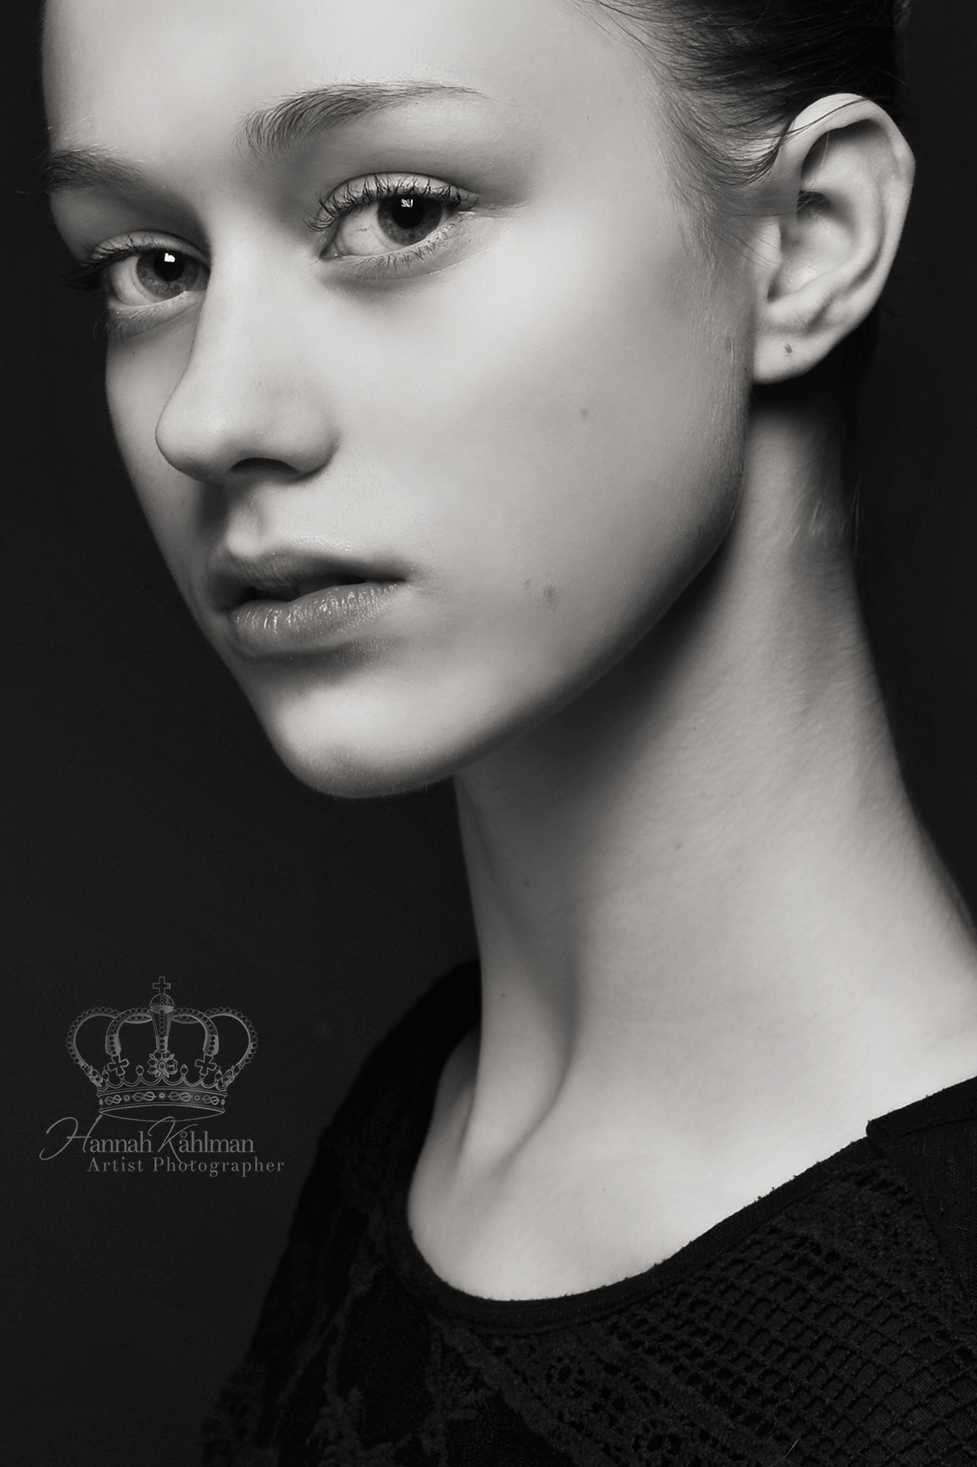 Dancer_portfolio_headshot_photographer_Anchorage_Alaska_Hannah_Kåhlman_Artist_Photographer_Universit